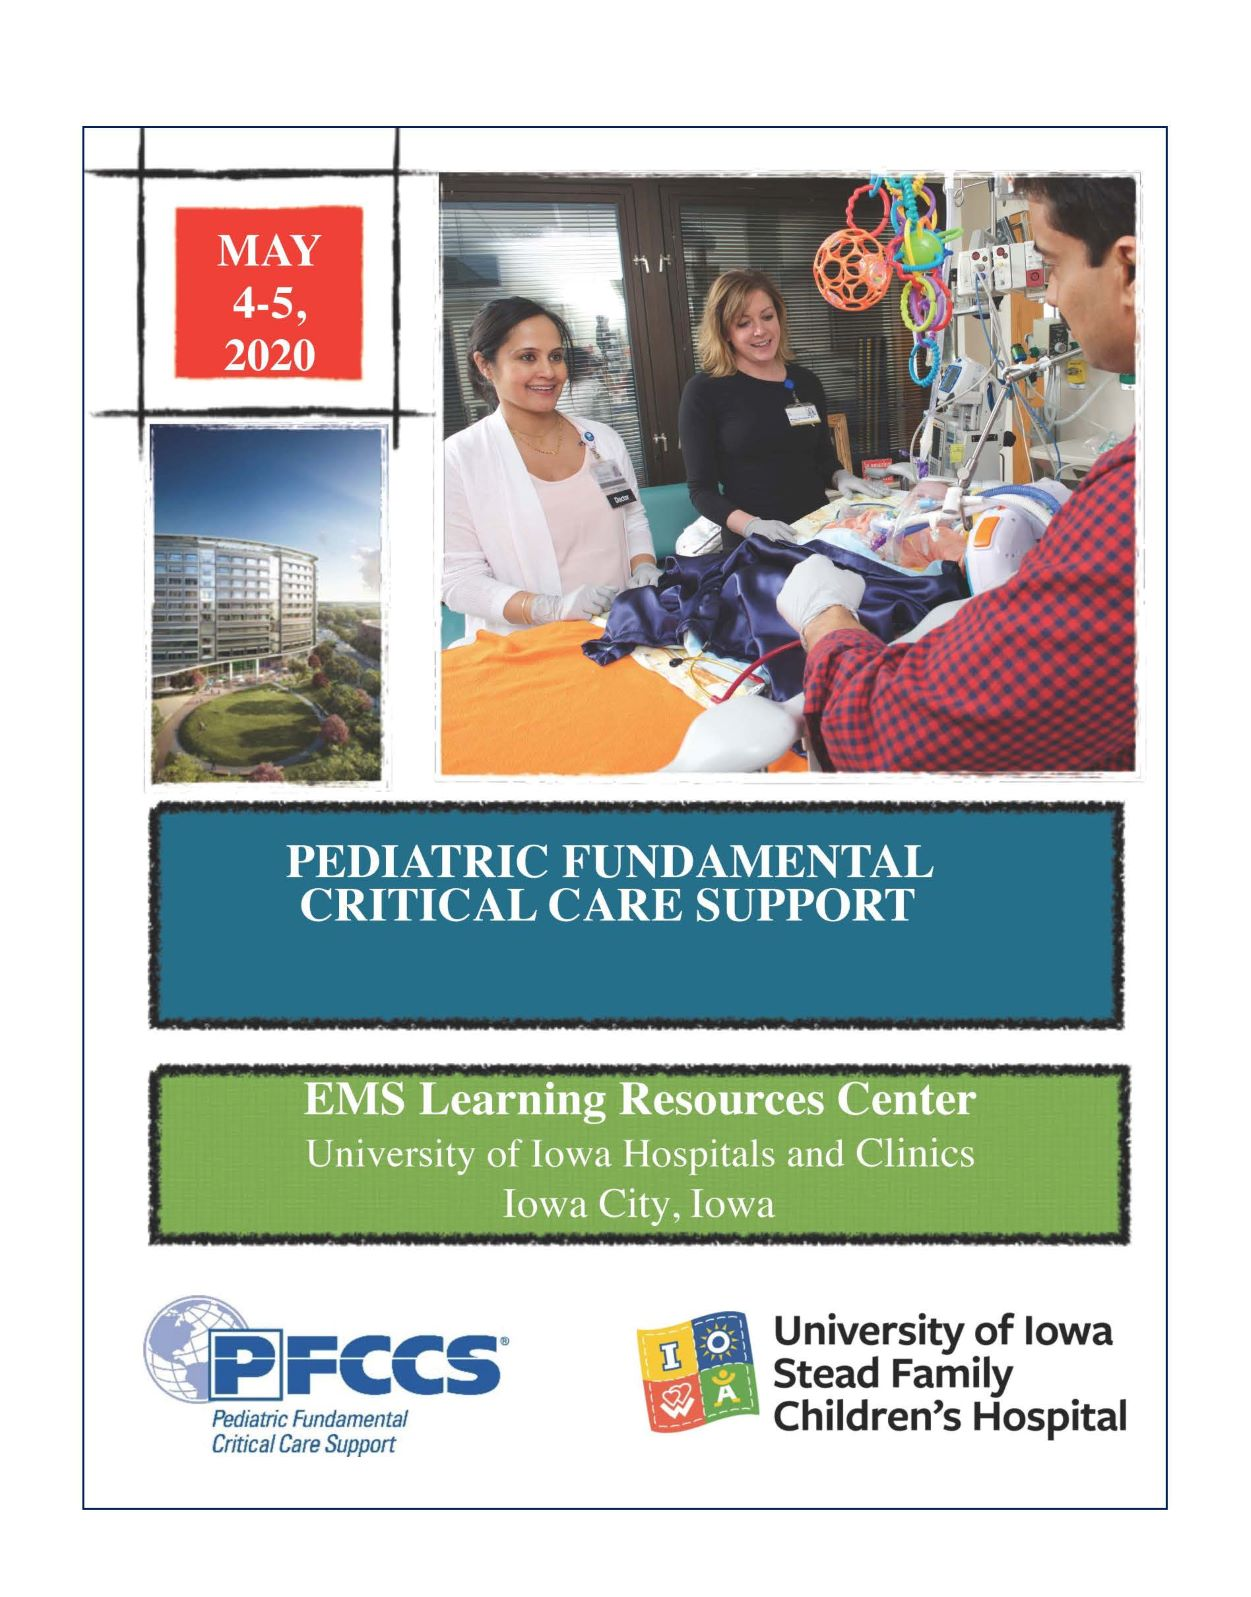 Pediatric Fundamental Critical Care Support (PFCCS) Banner